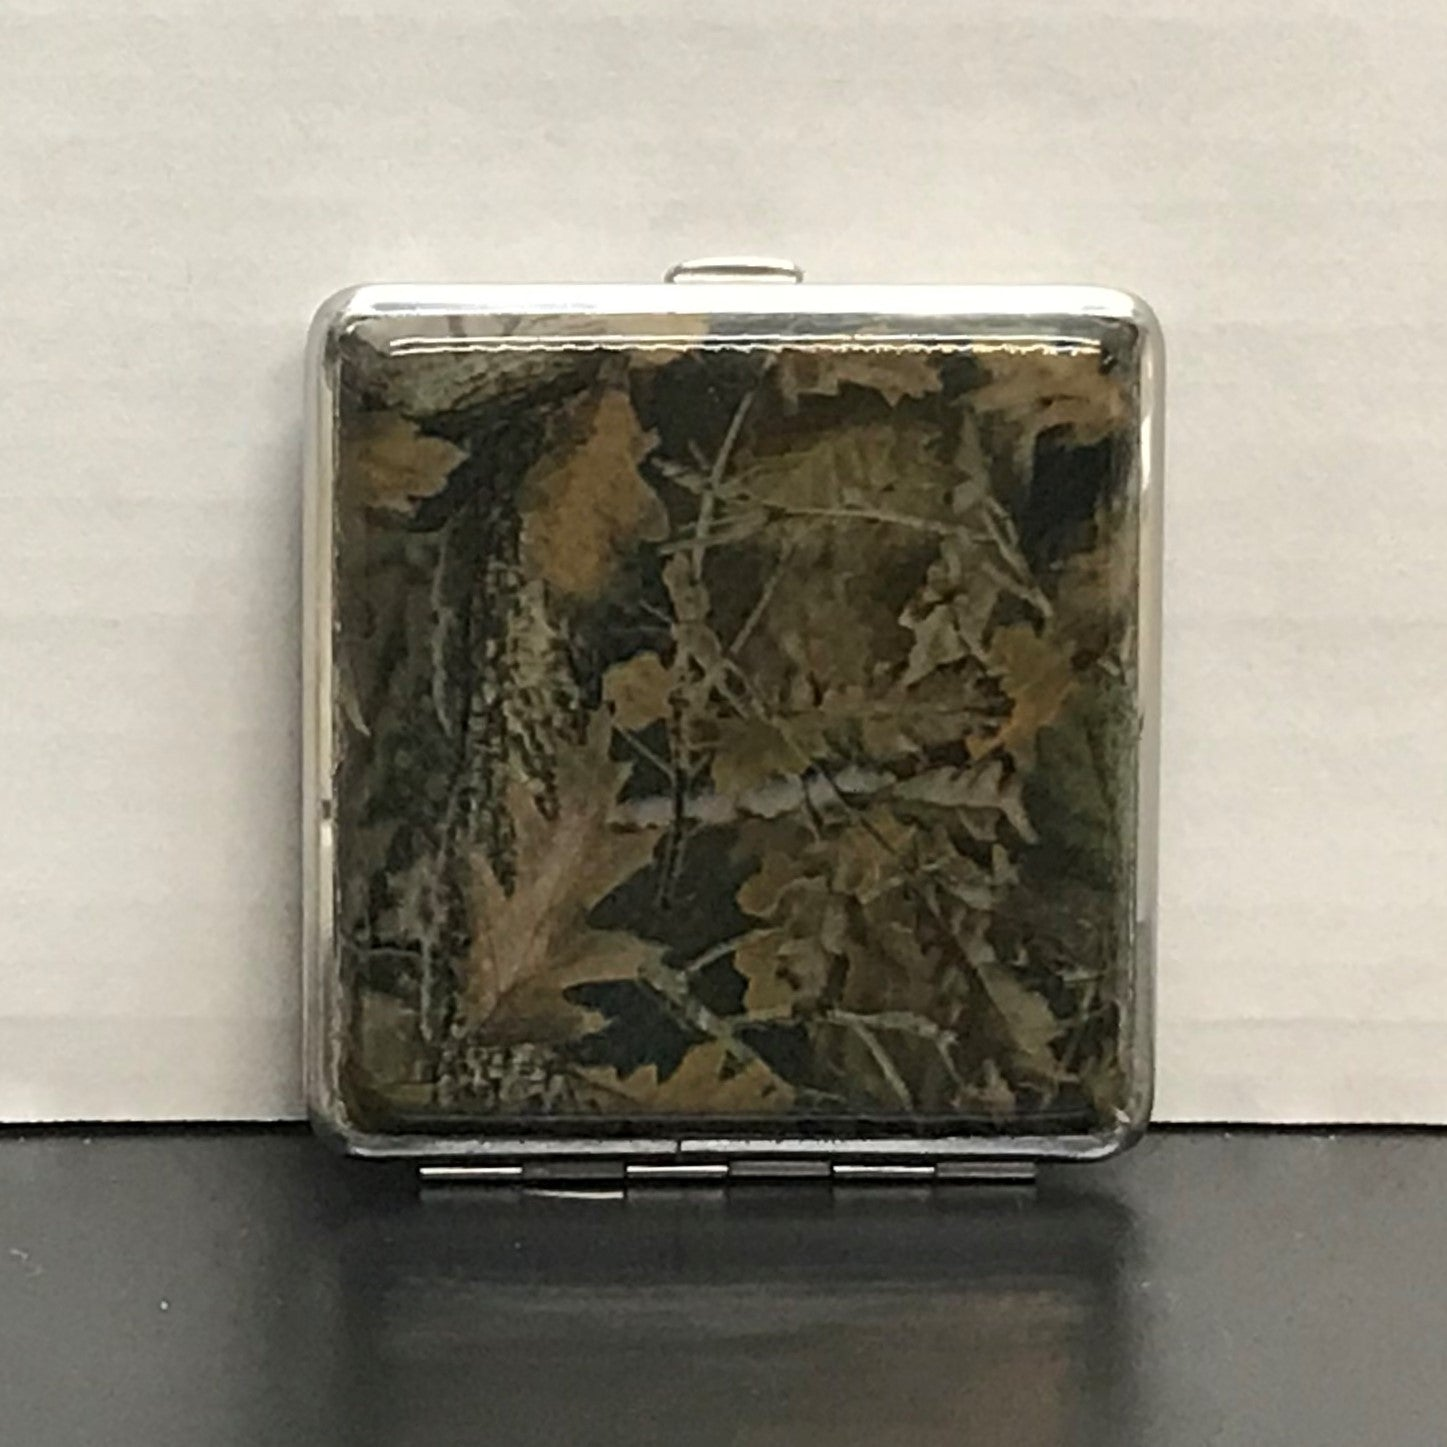 Cigarette Case - Mossy Oak Camo